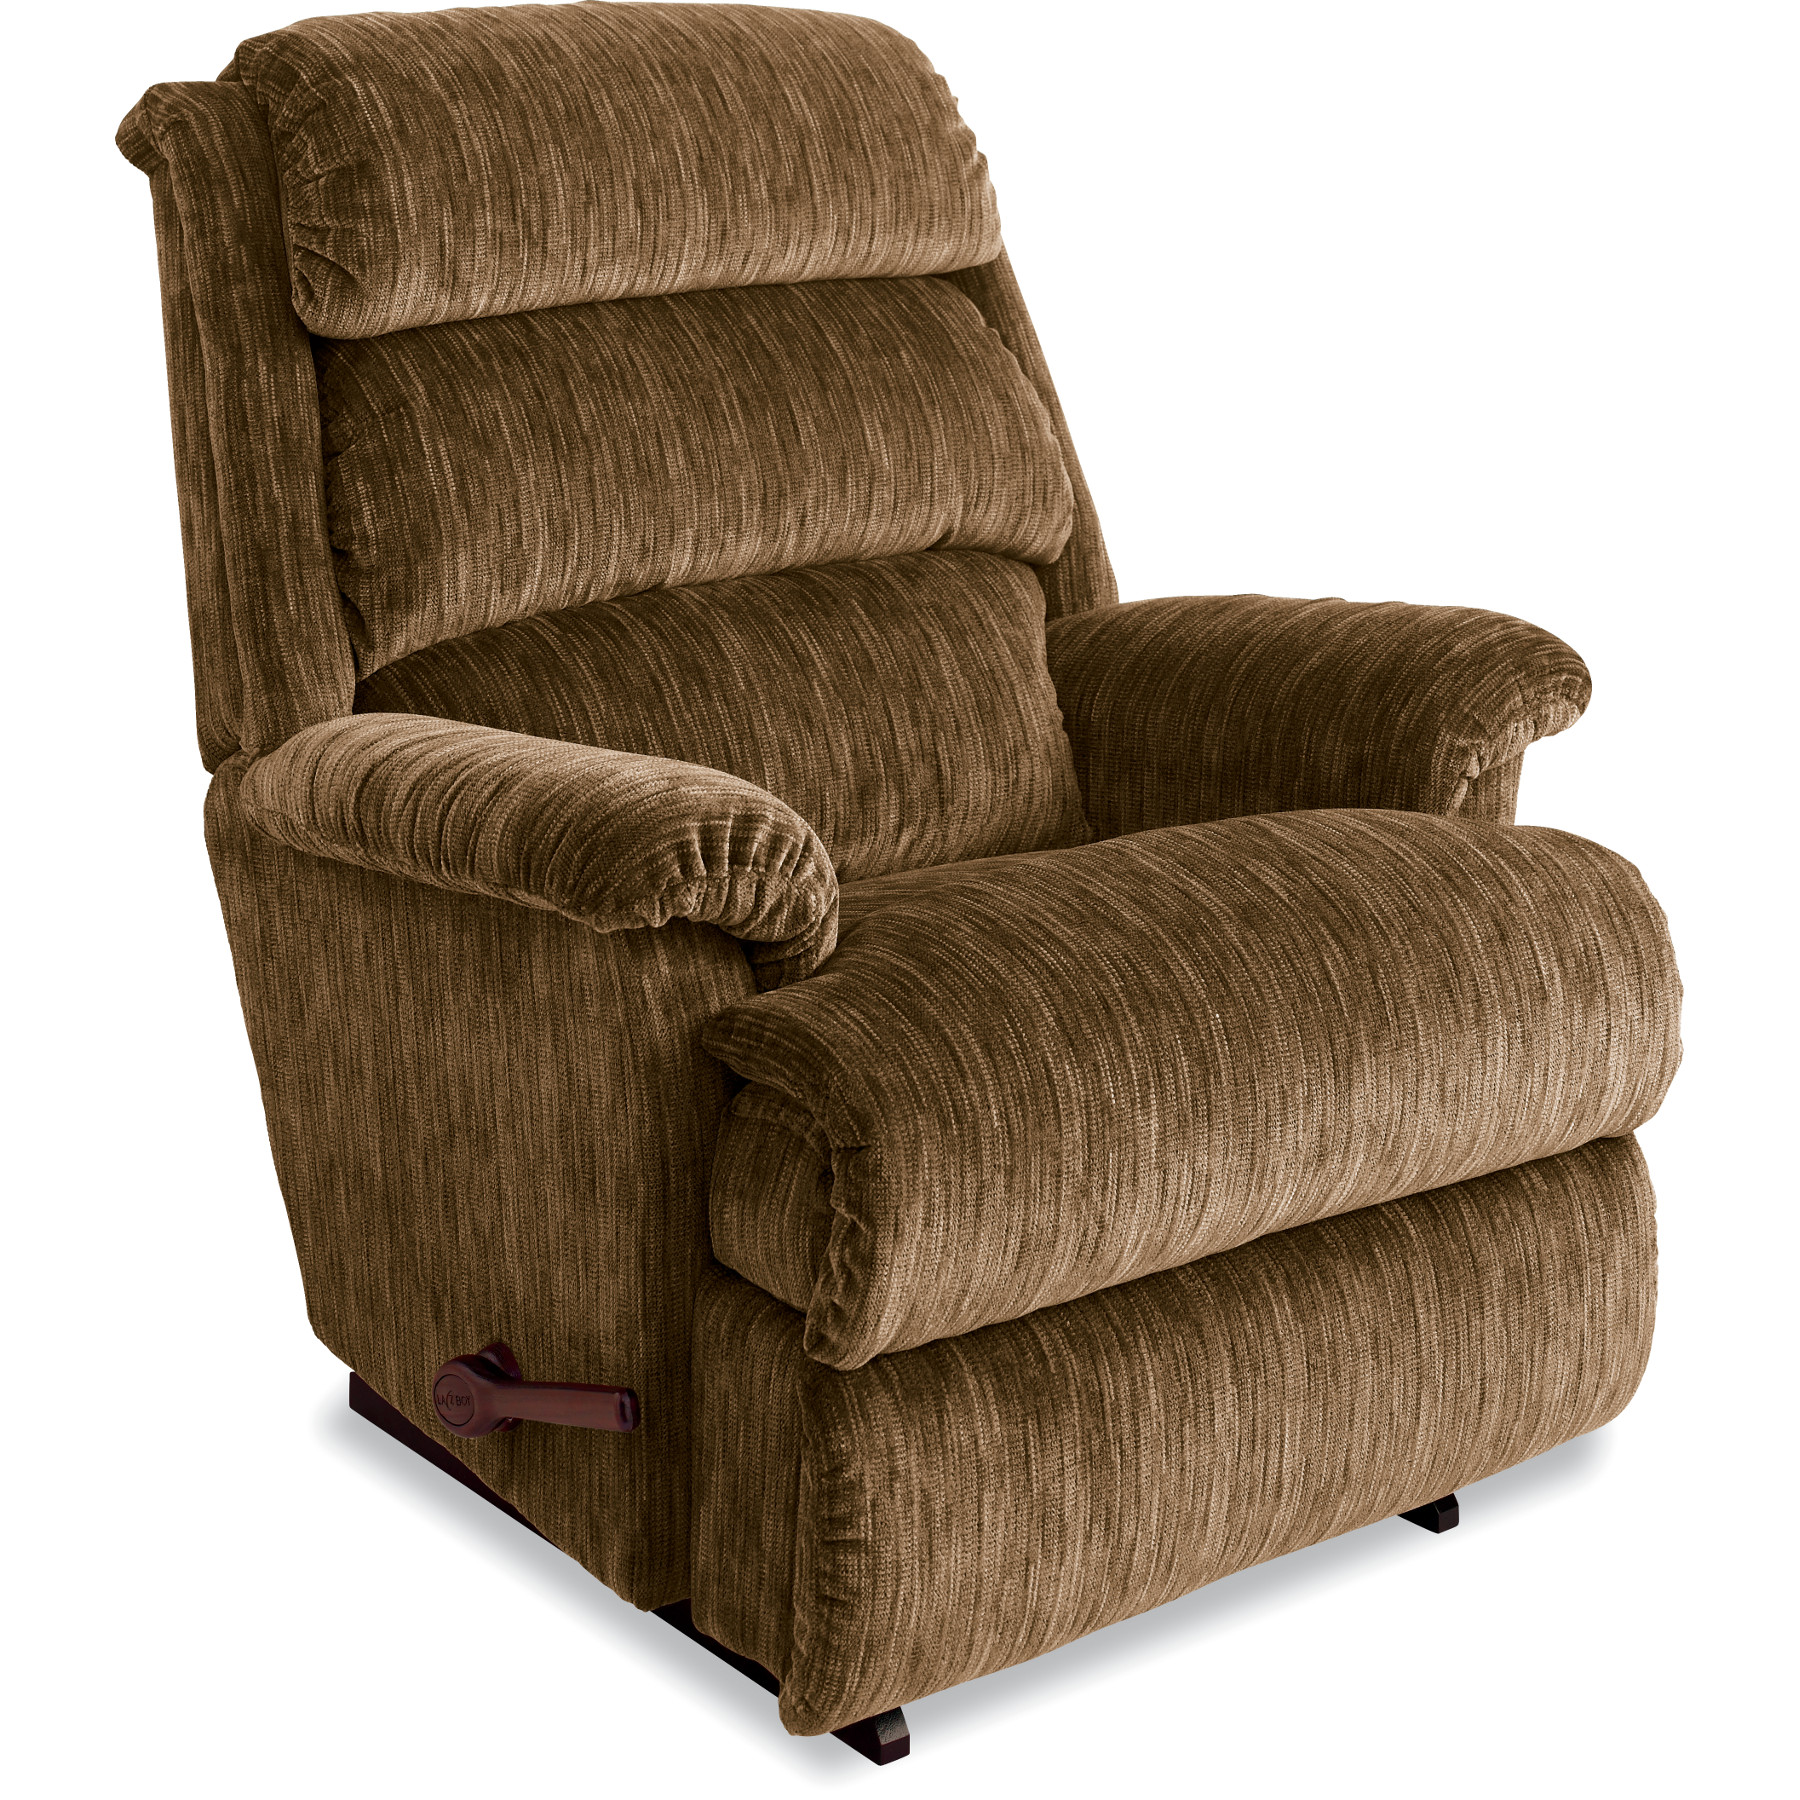 Rawlinson Rocker Swivel Recliner also Leather Recliners Lazy Boy as well Outdoor Rocking Chair Cushion Garden Rocker Cushion besides 42 Christmas Ideas Door Porch Decor furthermore Innovative Rubber Flooring That Gives The Beautify Look With Advanced Features. on outdoor rocker chairs